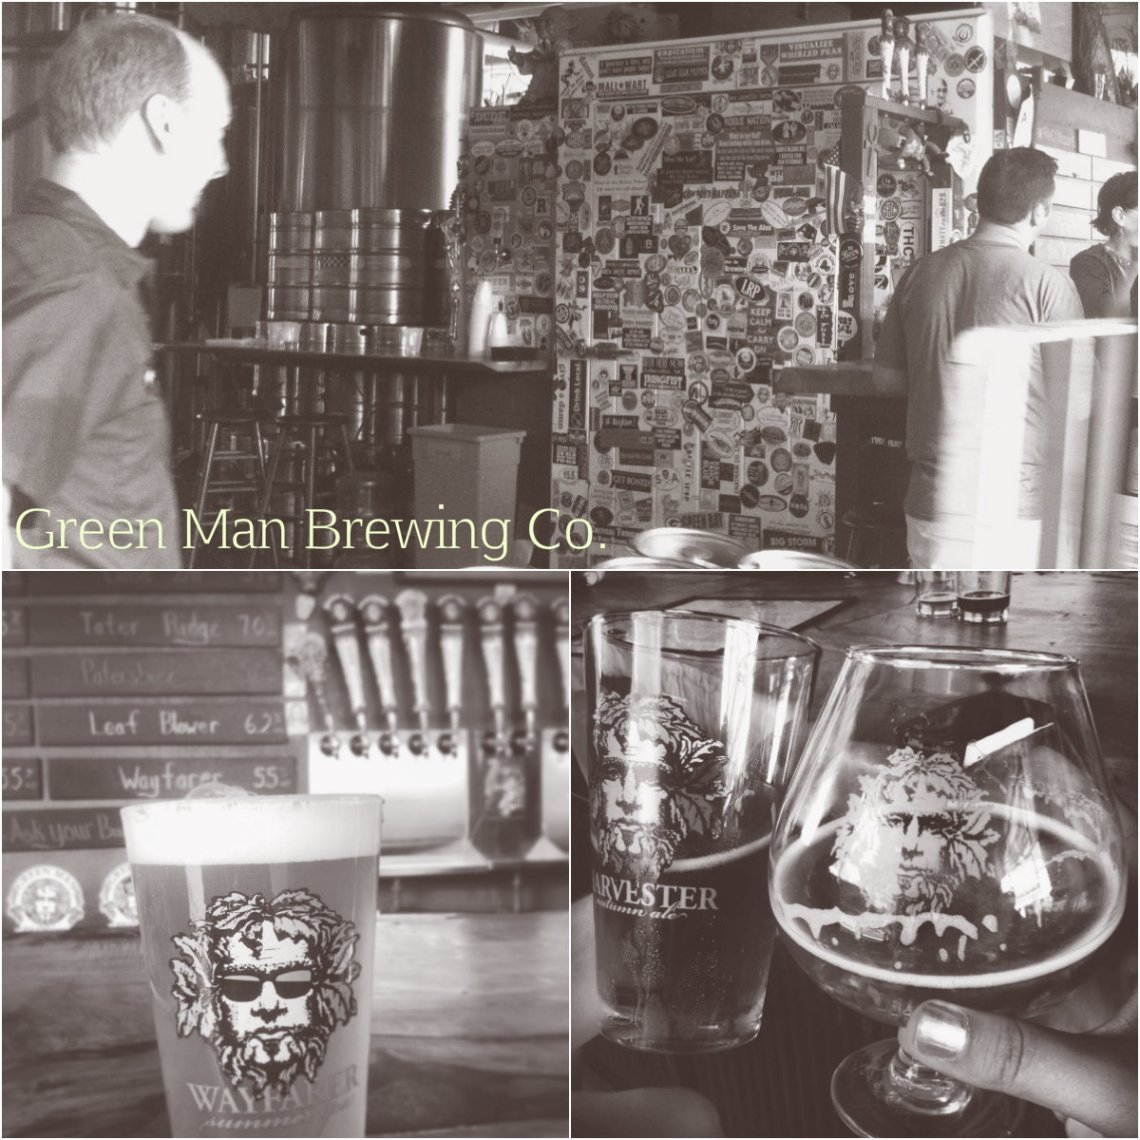 Green Man Brewing Co.